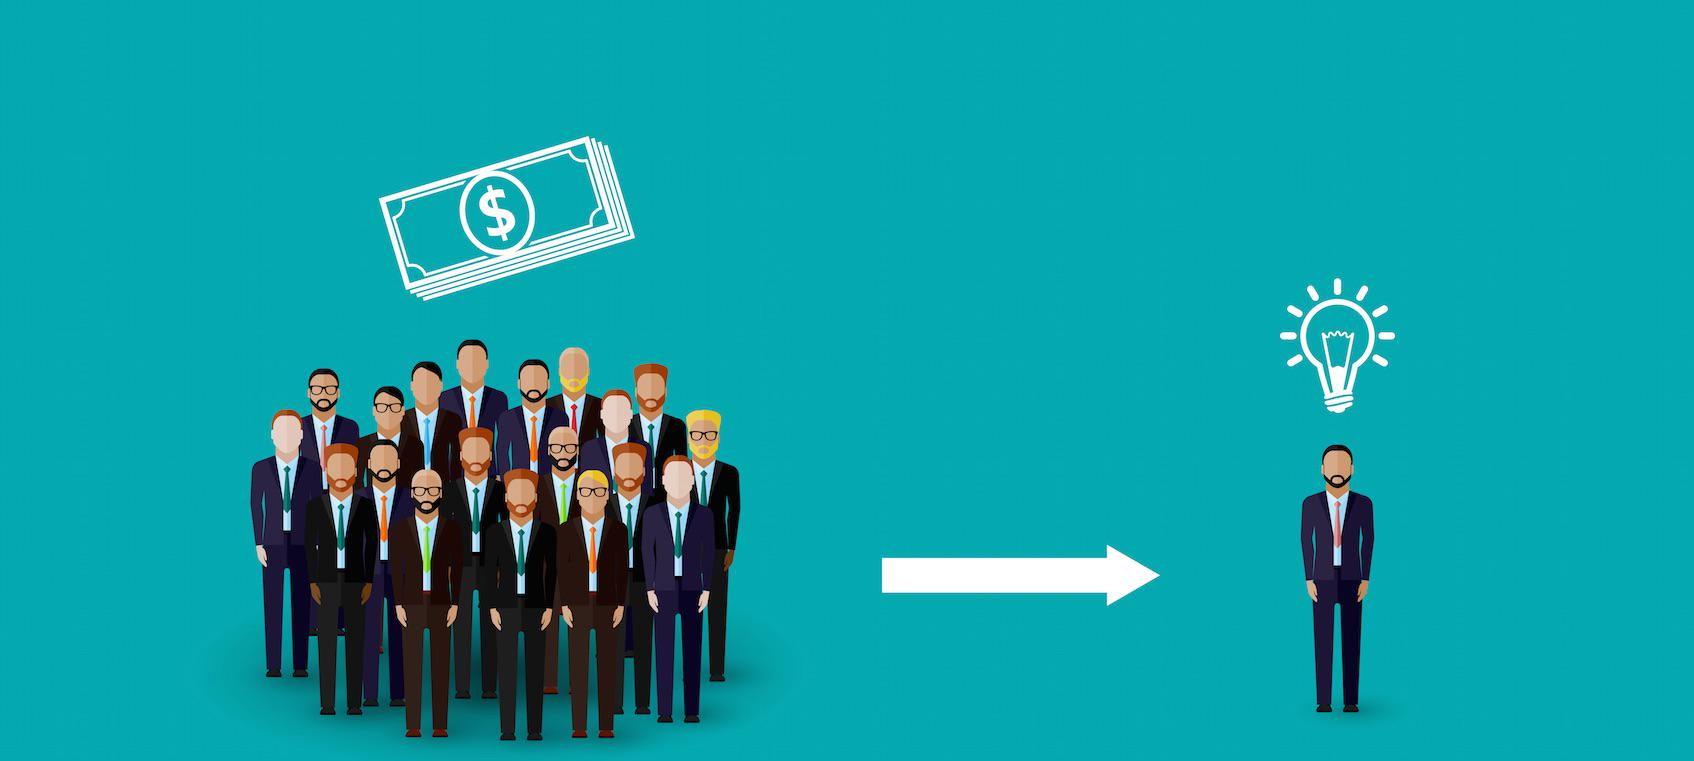 RT @TheNextWeb: How to decide between crowdfunding or VC money http://t.co/7pcwhRgAVf http://t.co/1RuvI7sXPI